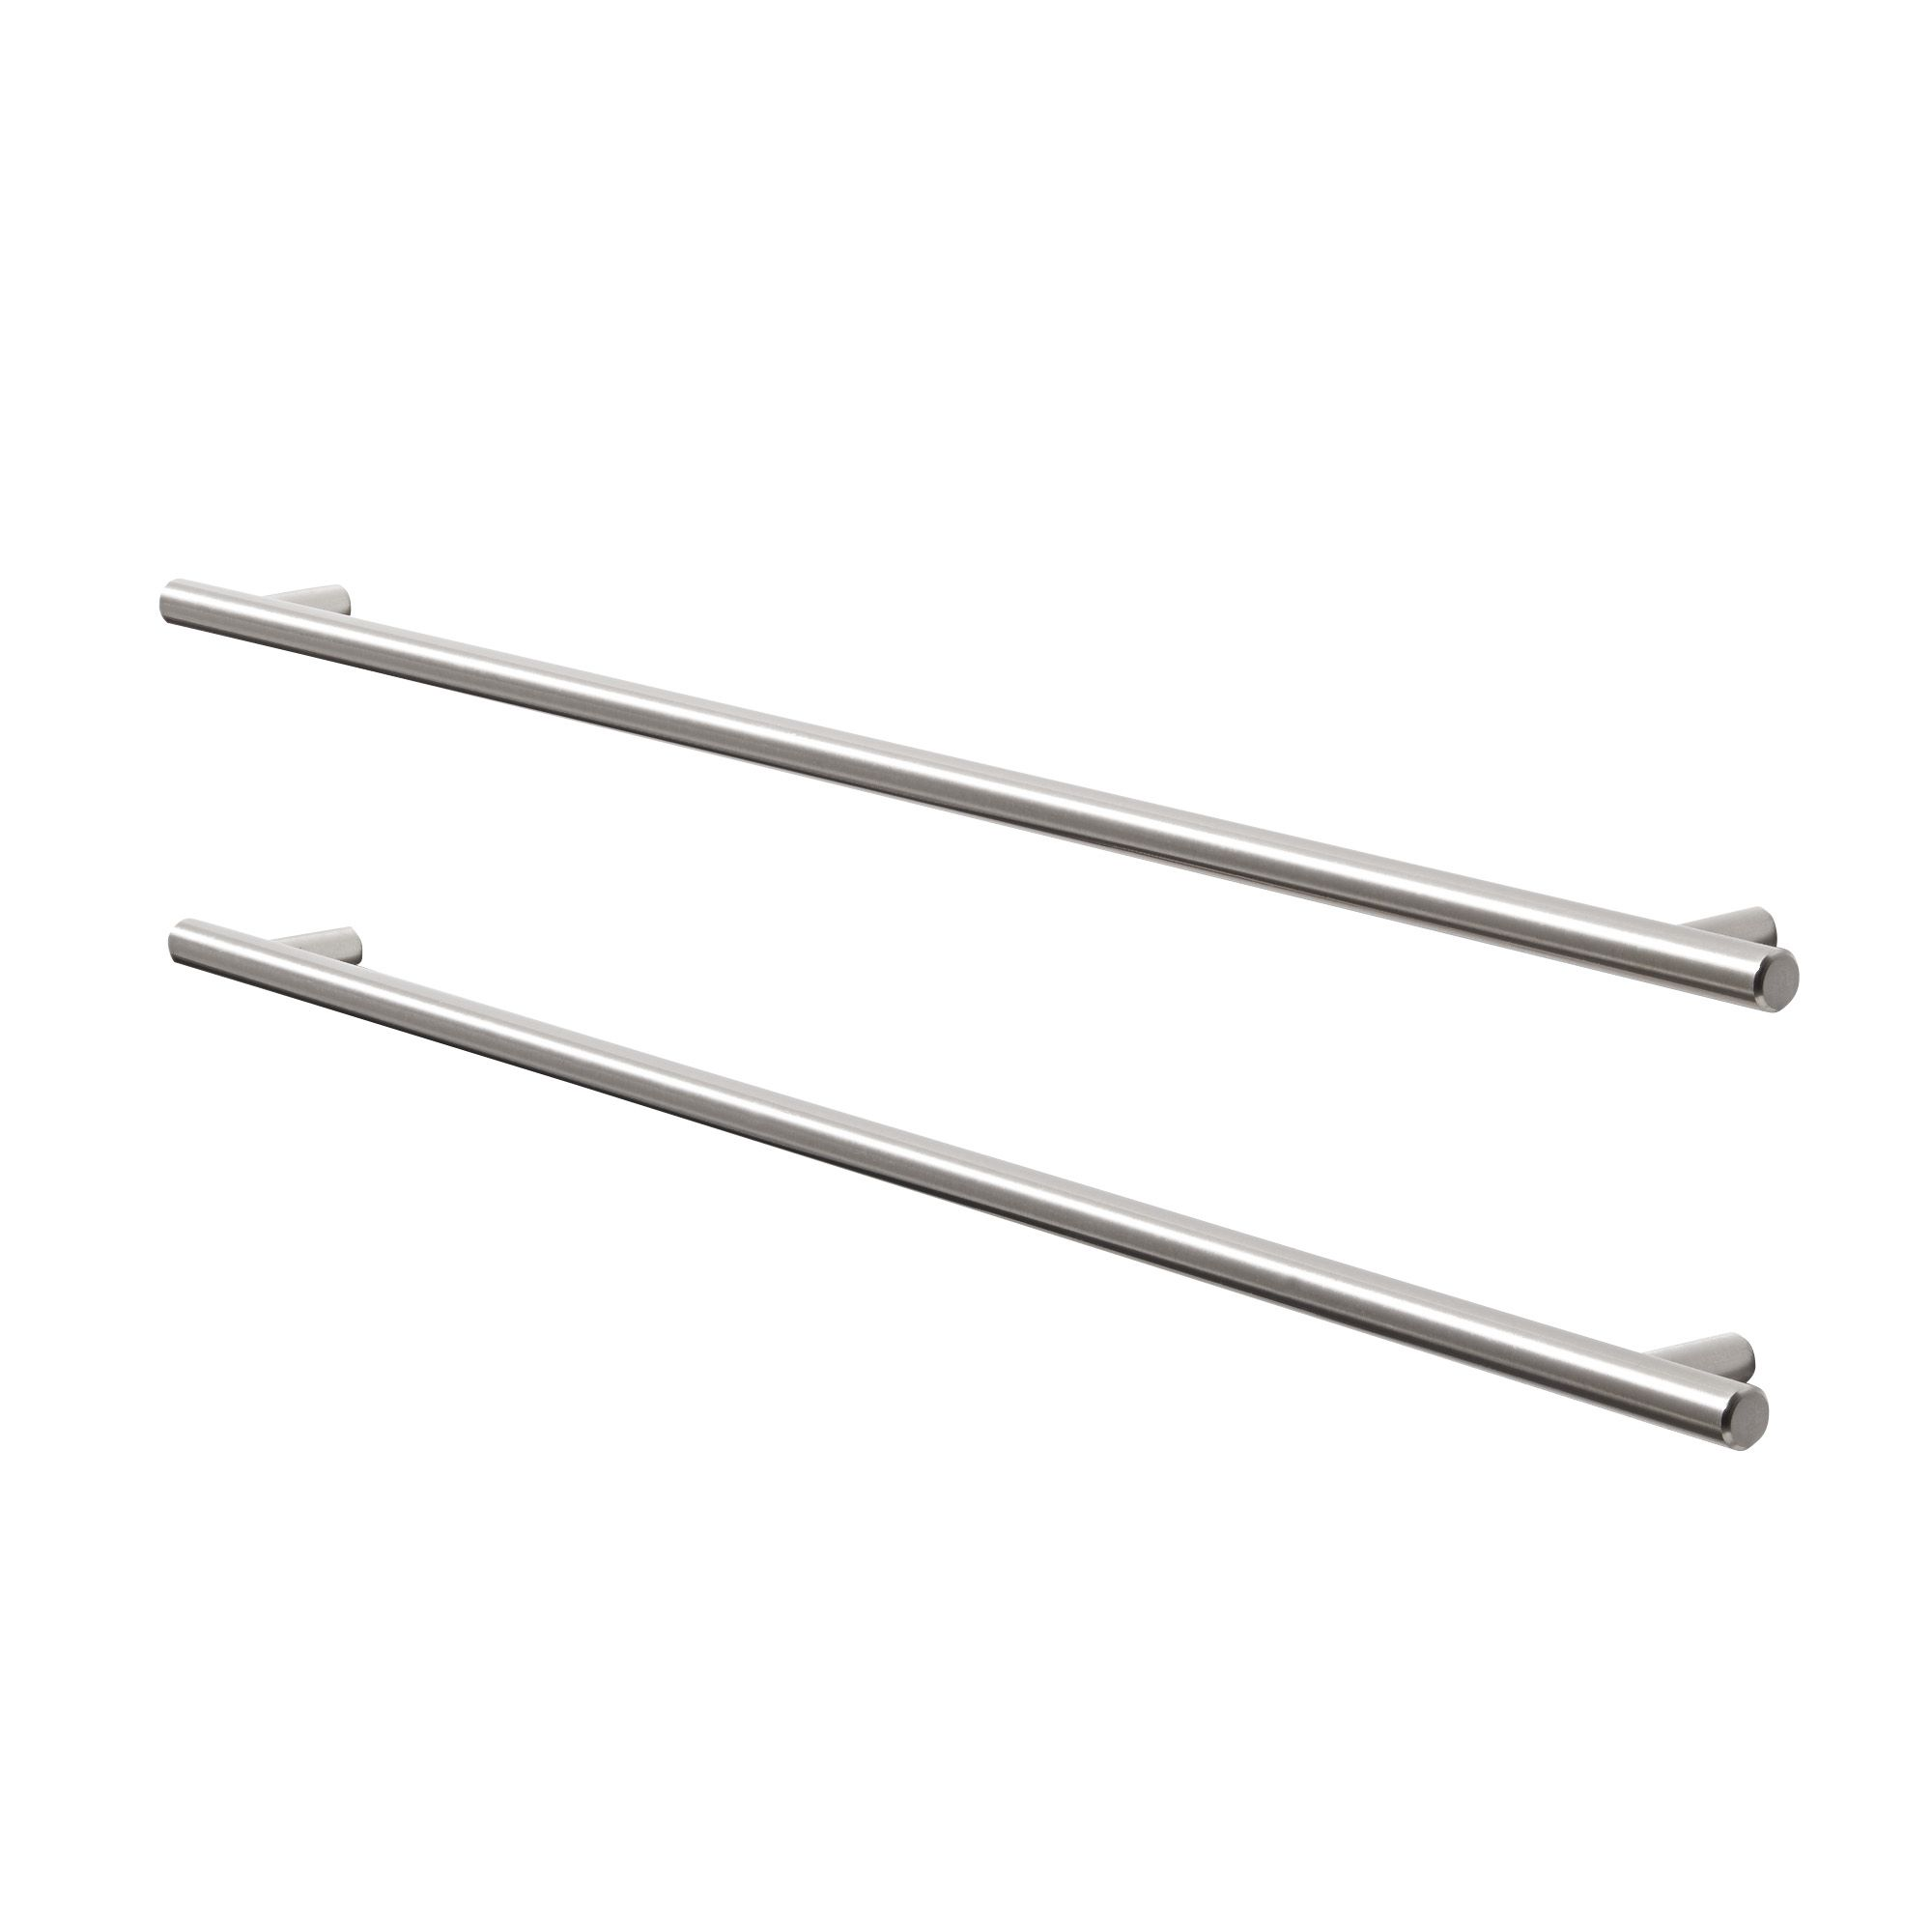 L 497mm Pack of 2 B/&Q Brushed Nickel Straight Cupboard Handle